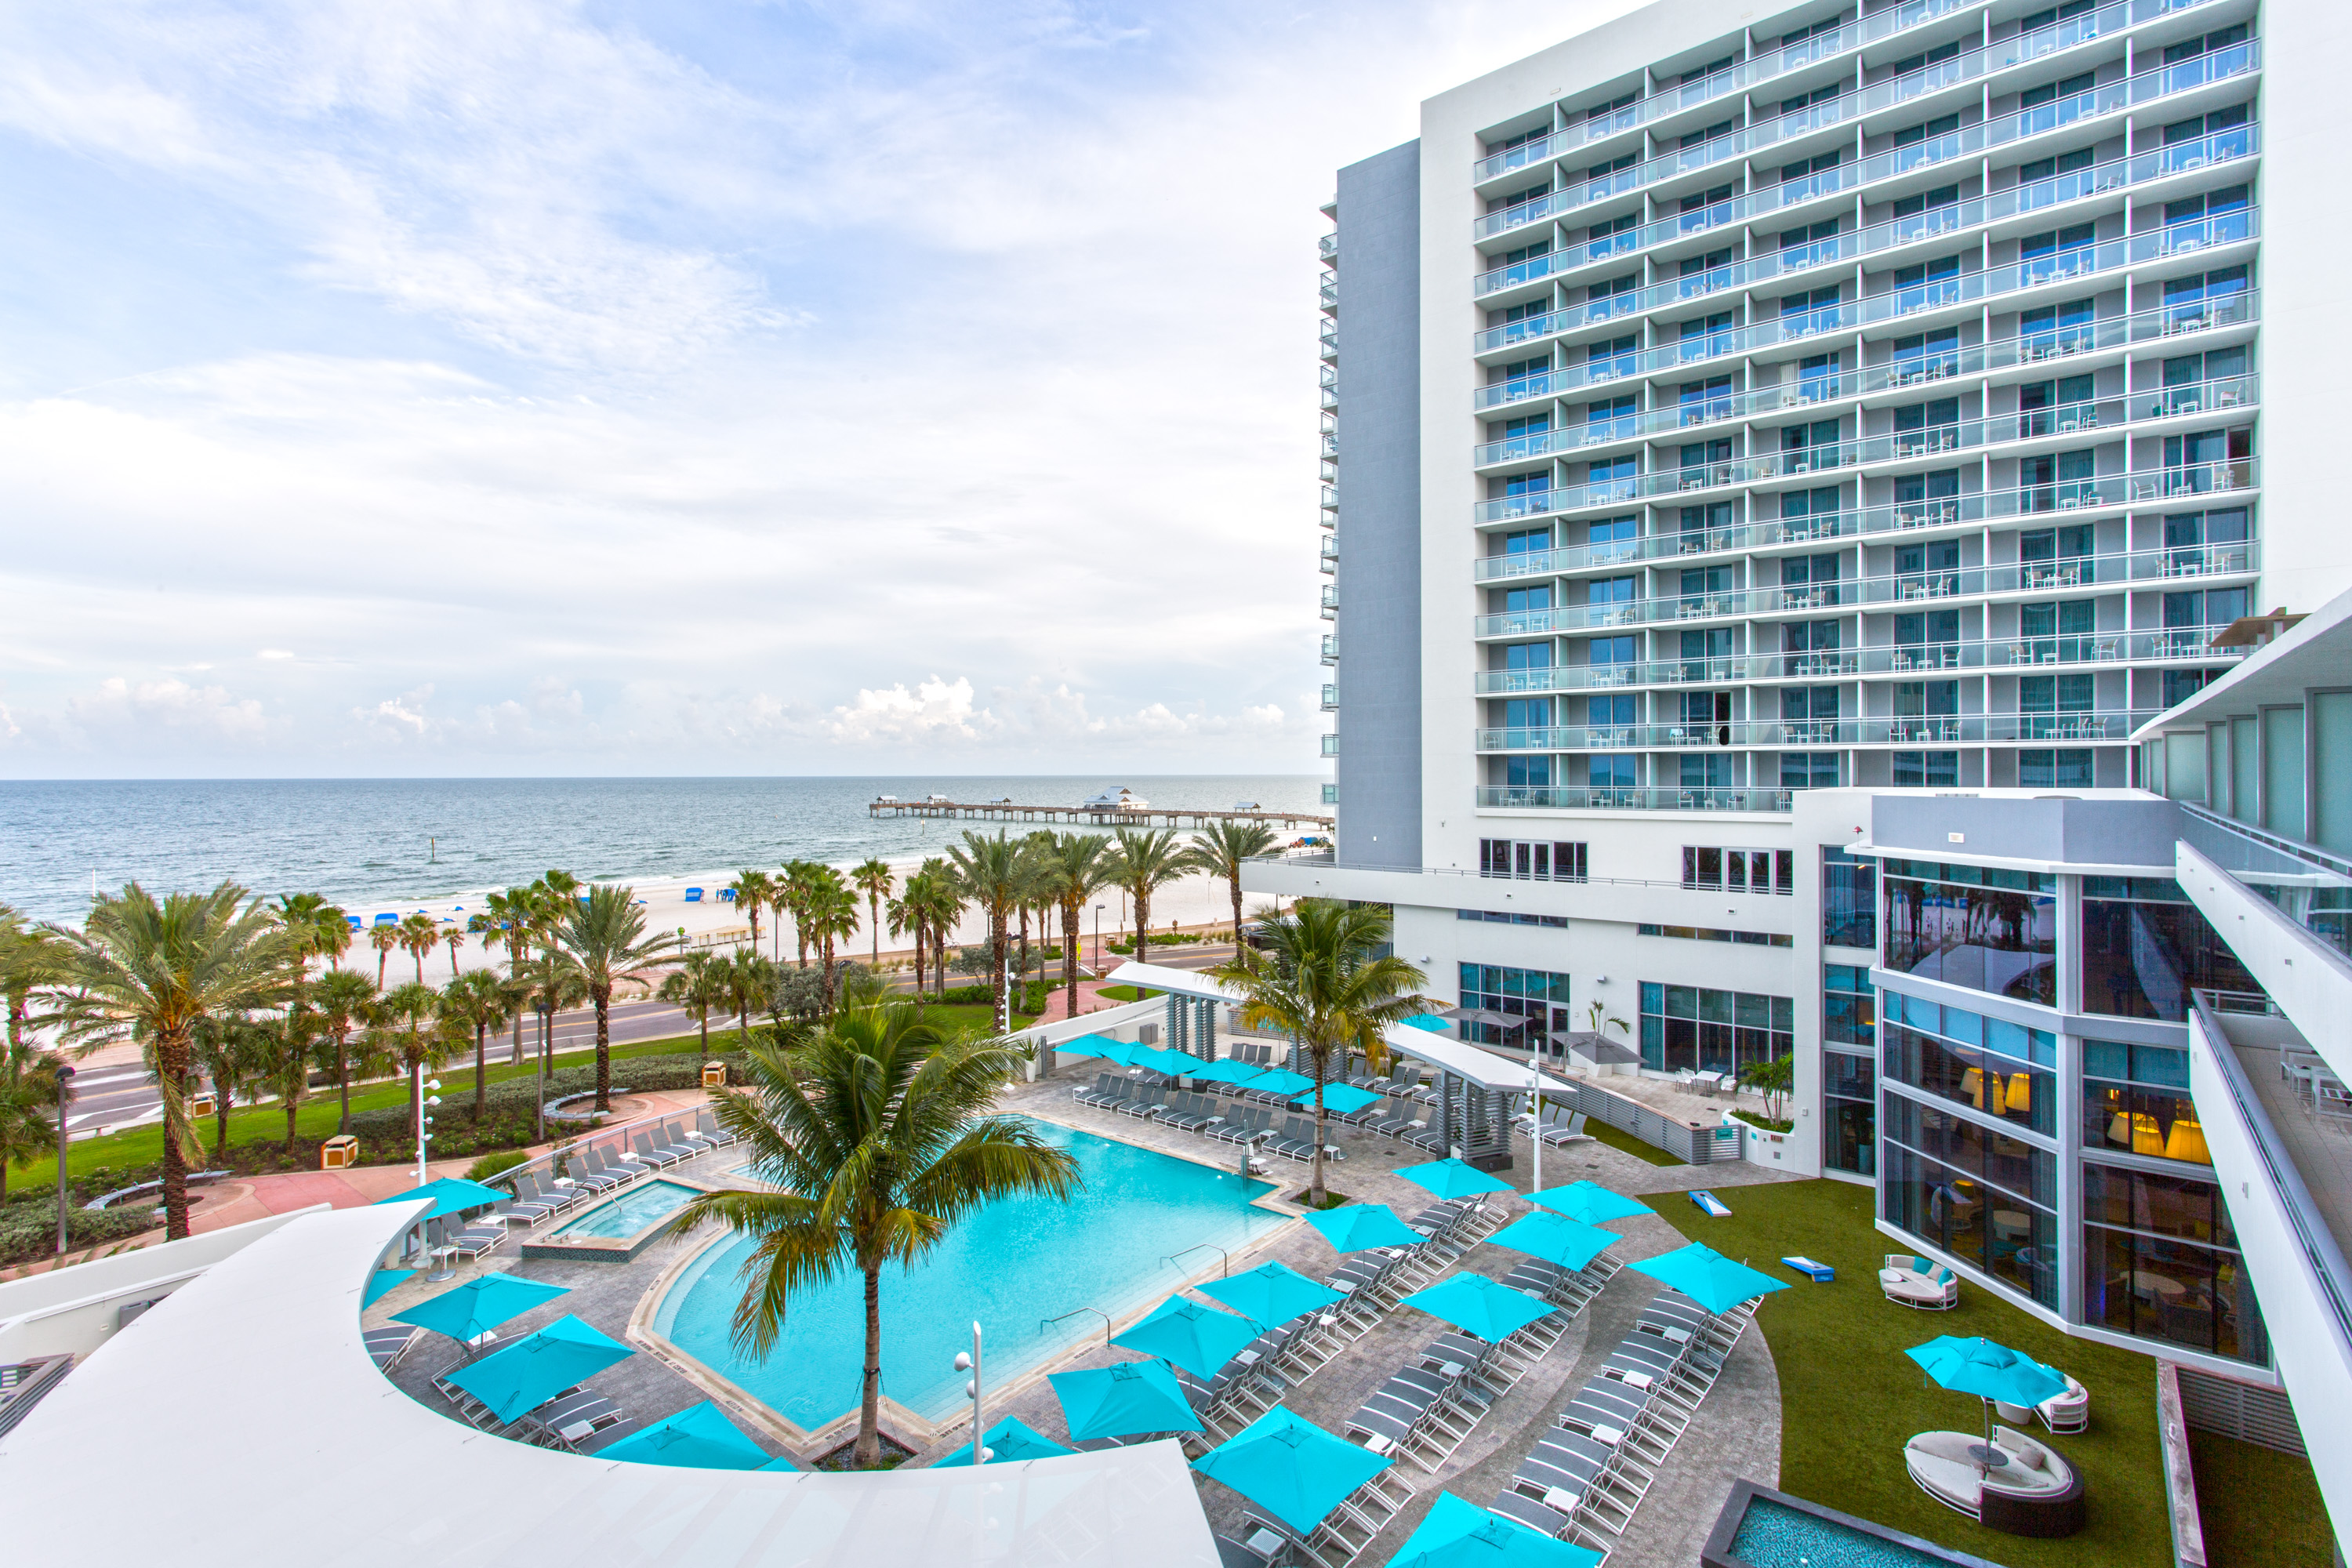 Apartment Clearwater Beach Resort 2 Bedrooms 2 bathrooms photo 18438271